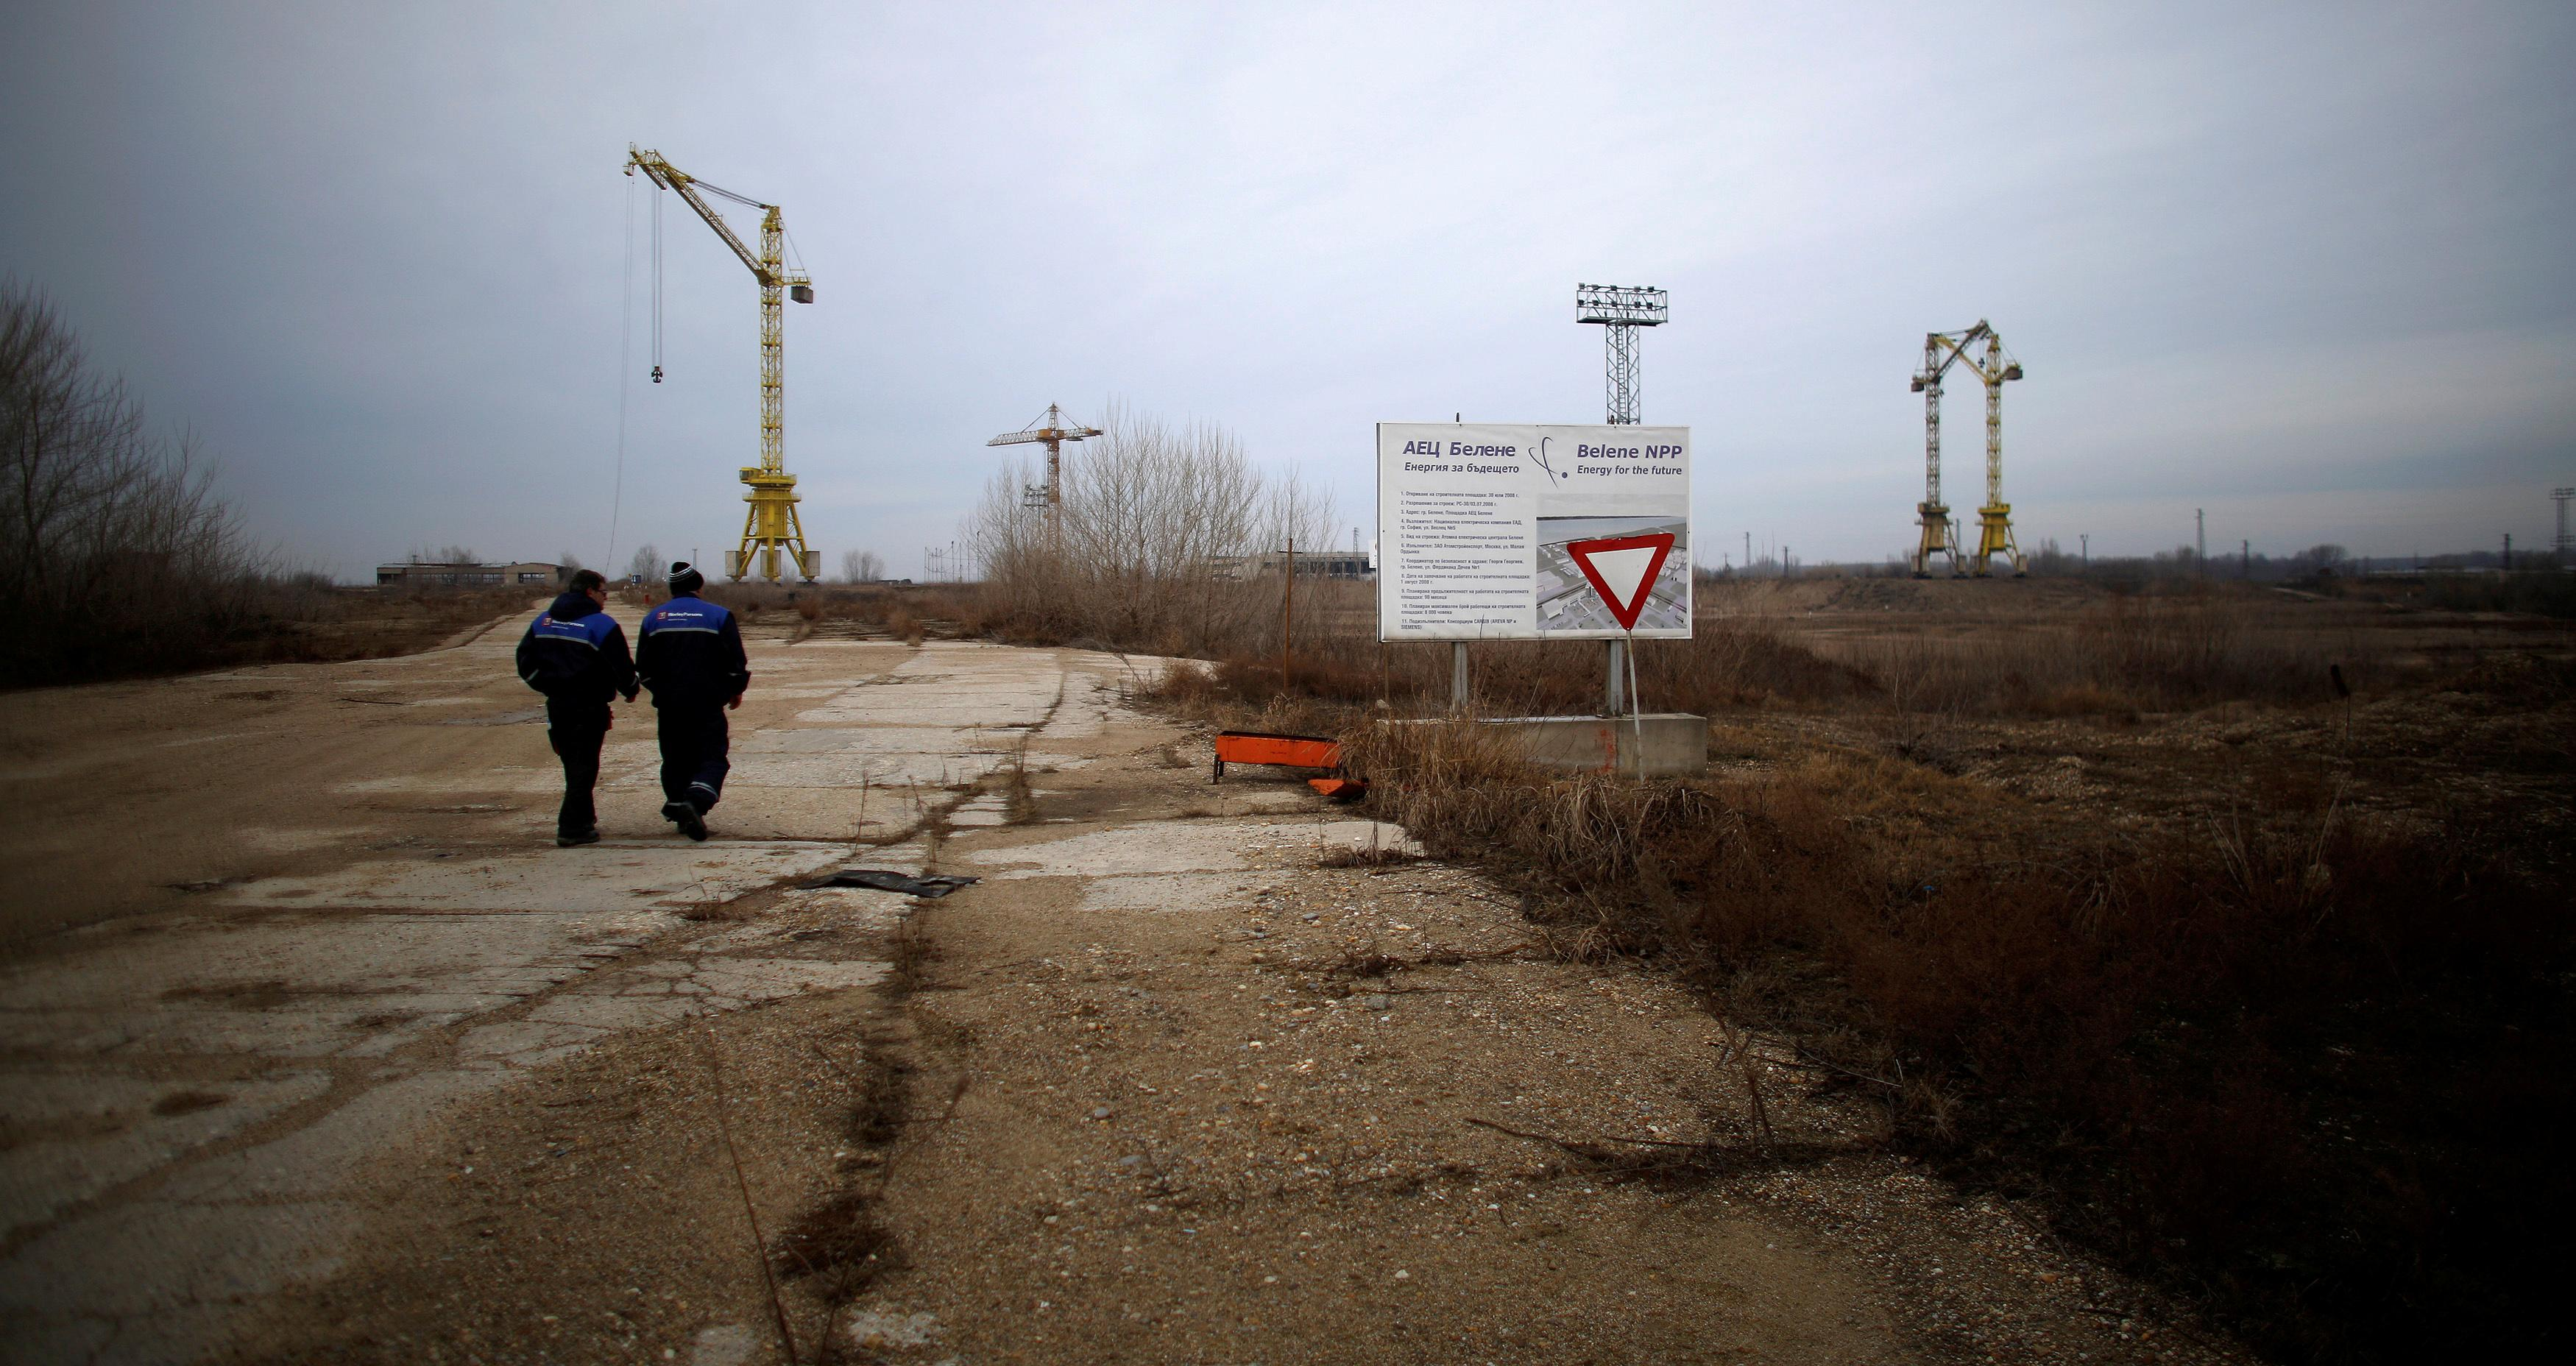 Bulgaria nuclear project attracts China and South Korea interest - sources